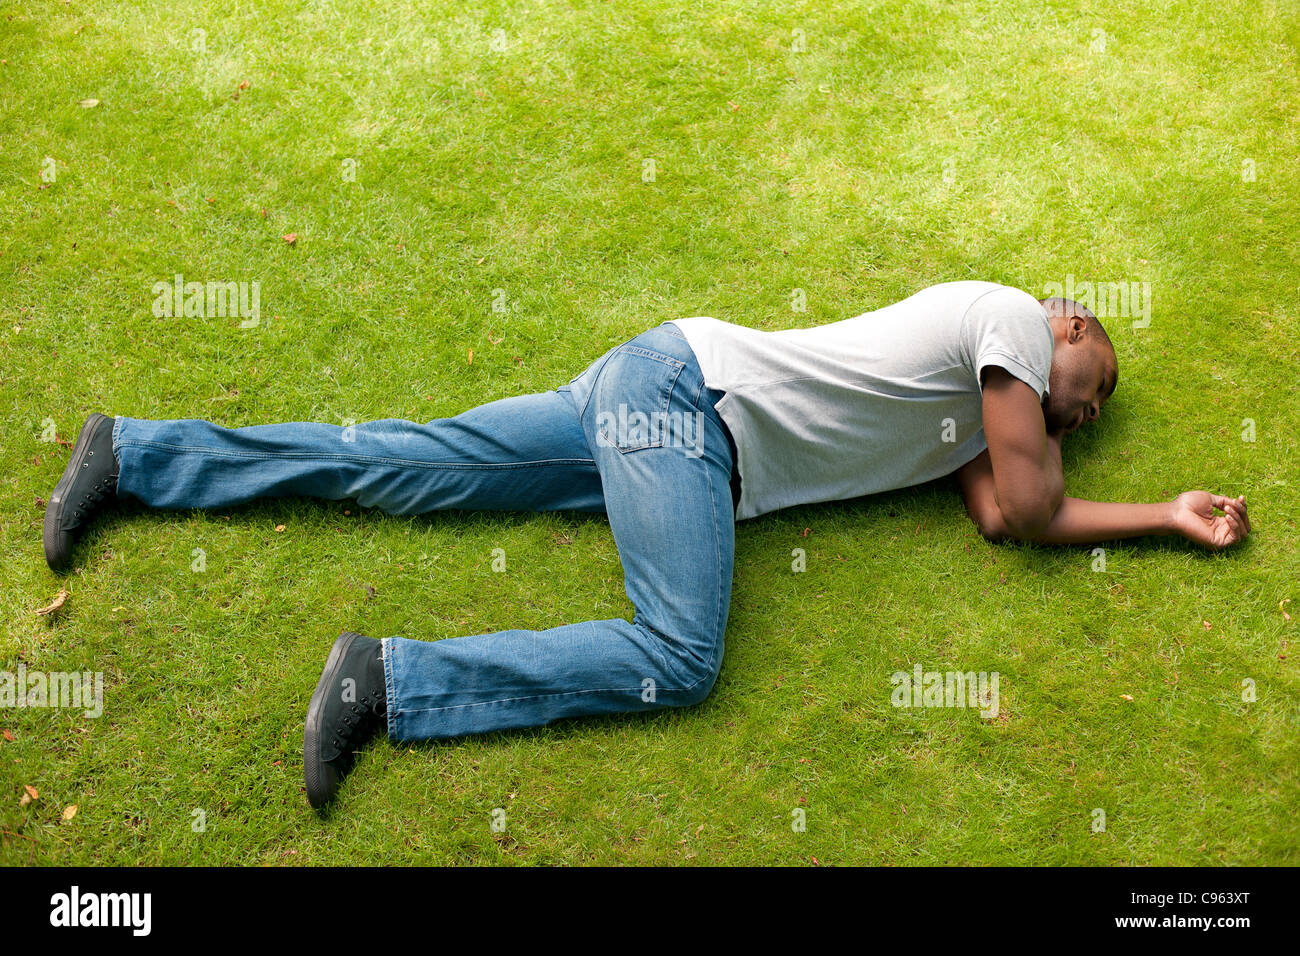 Man in recovery position. - Stock Image